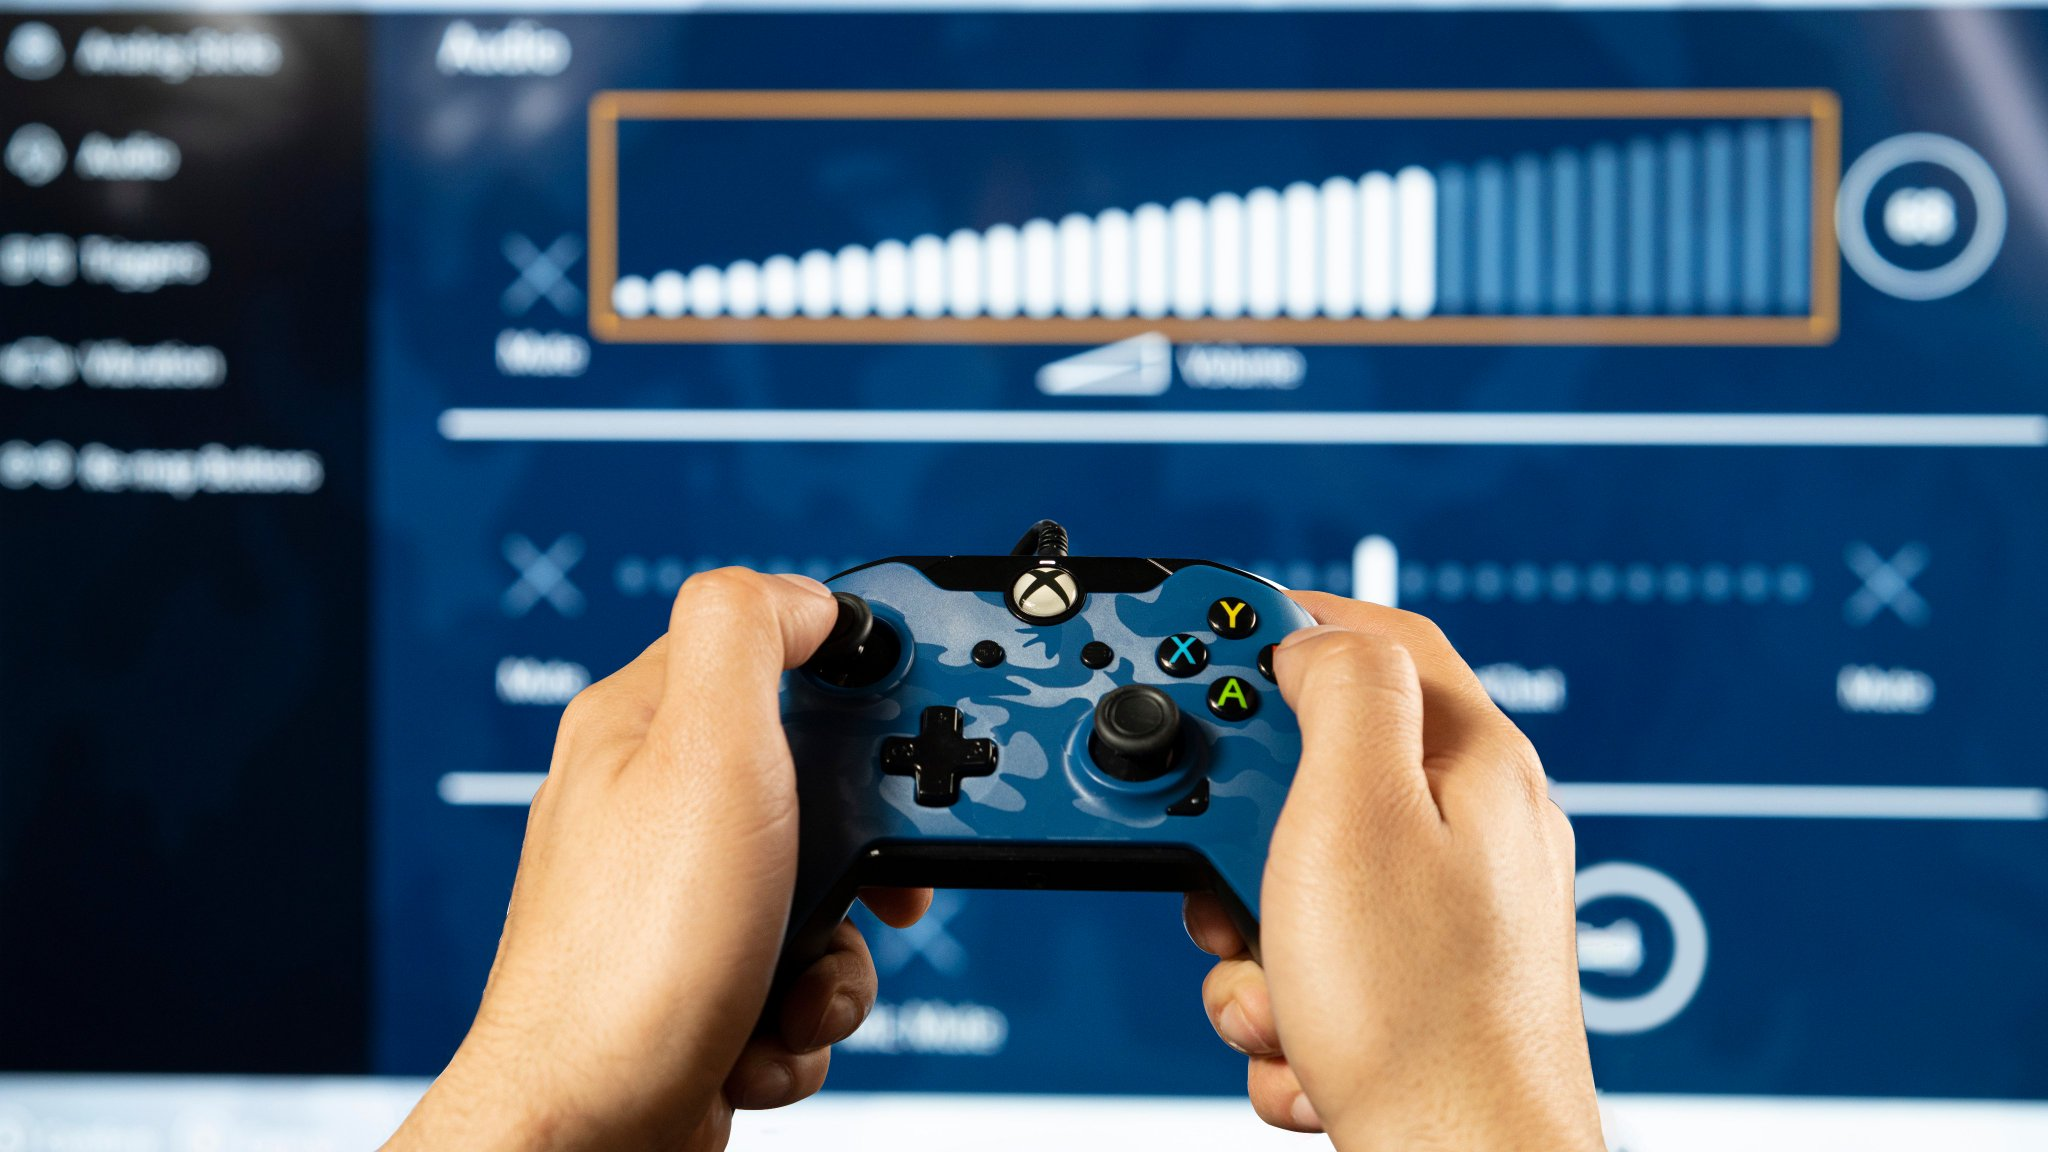 Pdp Gaming On Twitter Configure The Volume Game Chat Settings And Mic Monitoring For The Xboxone Wired Controller With The Free Pdp Control Hub App Download It Today Https T Co Gl5nsc5p0j